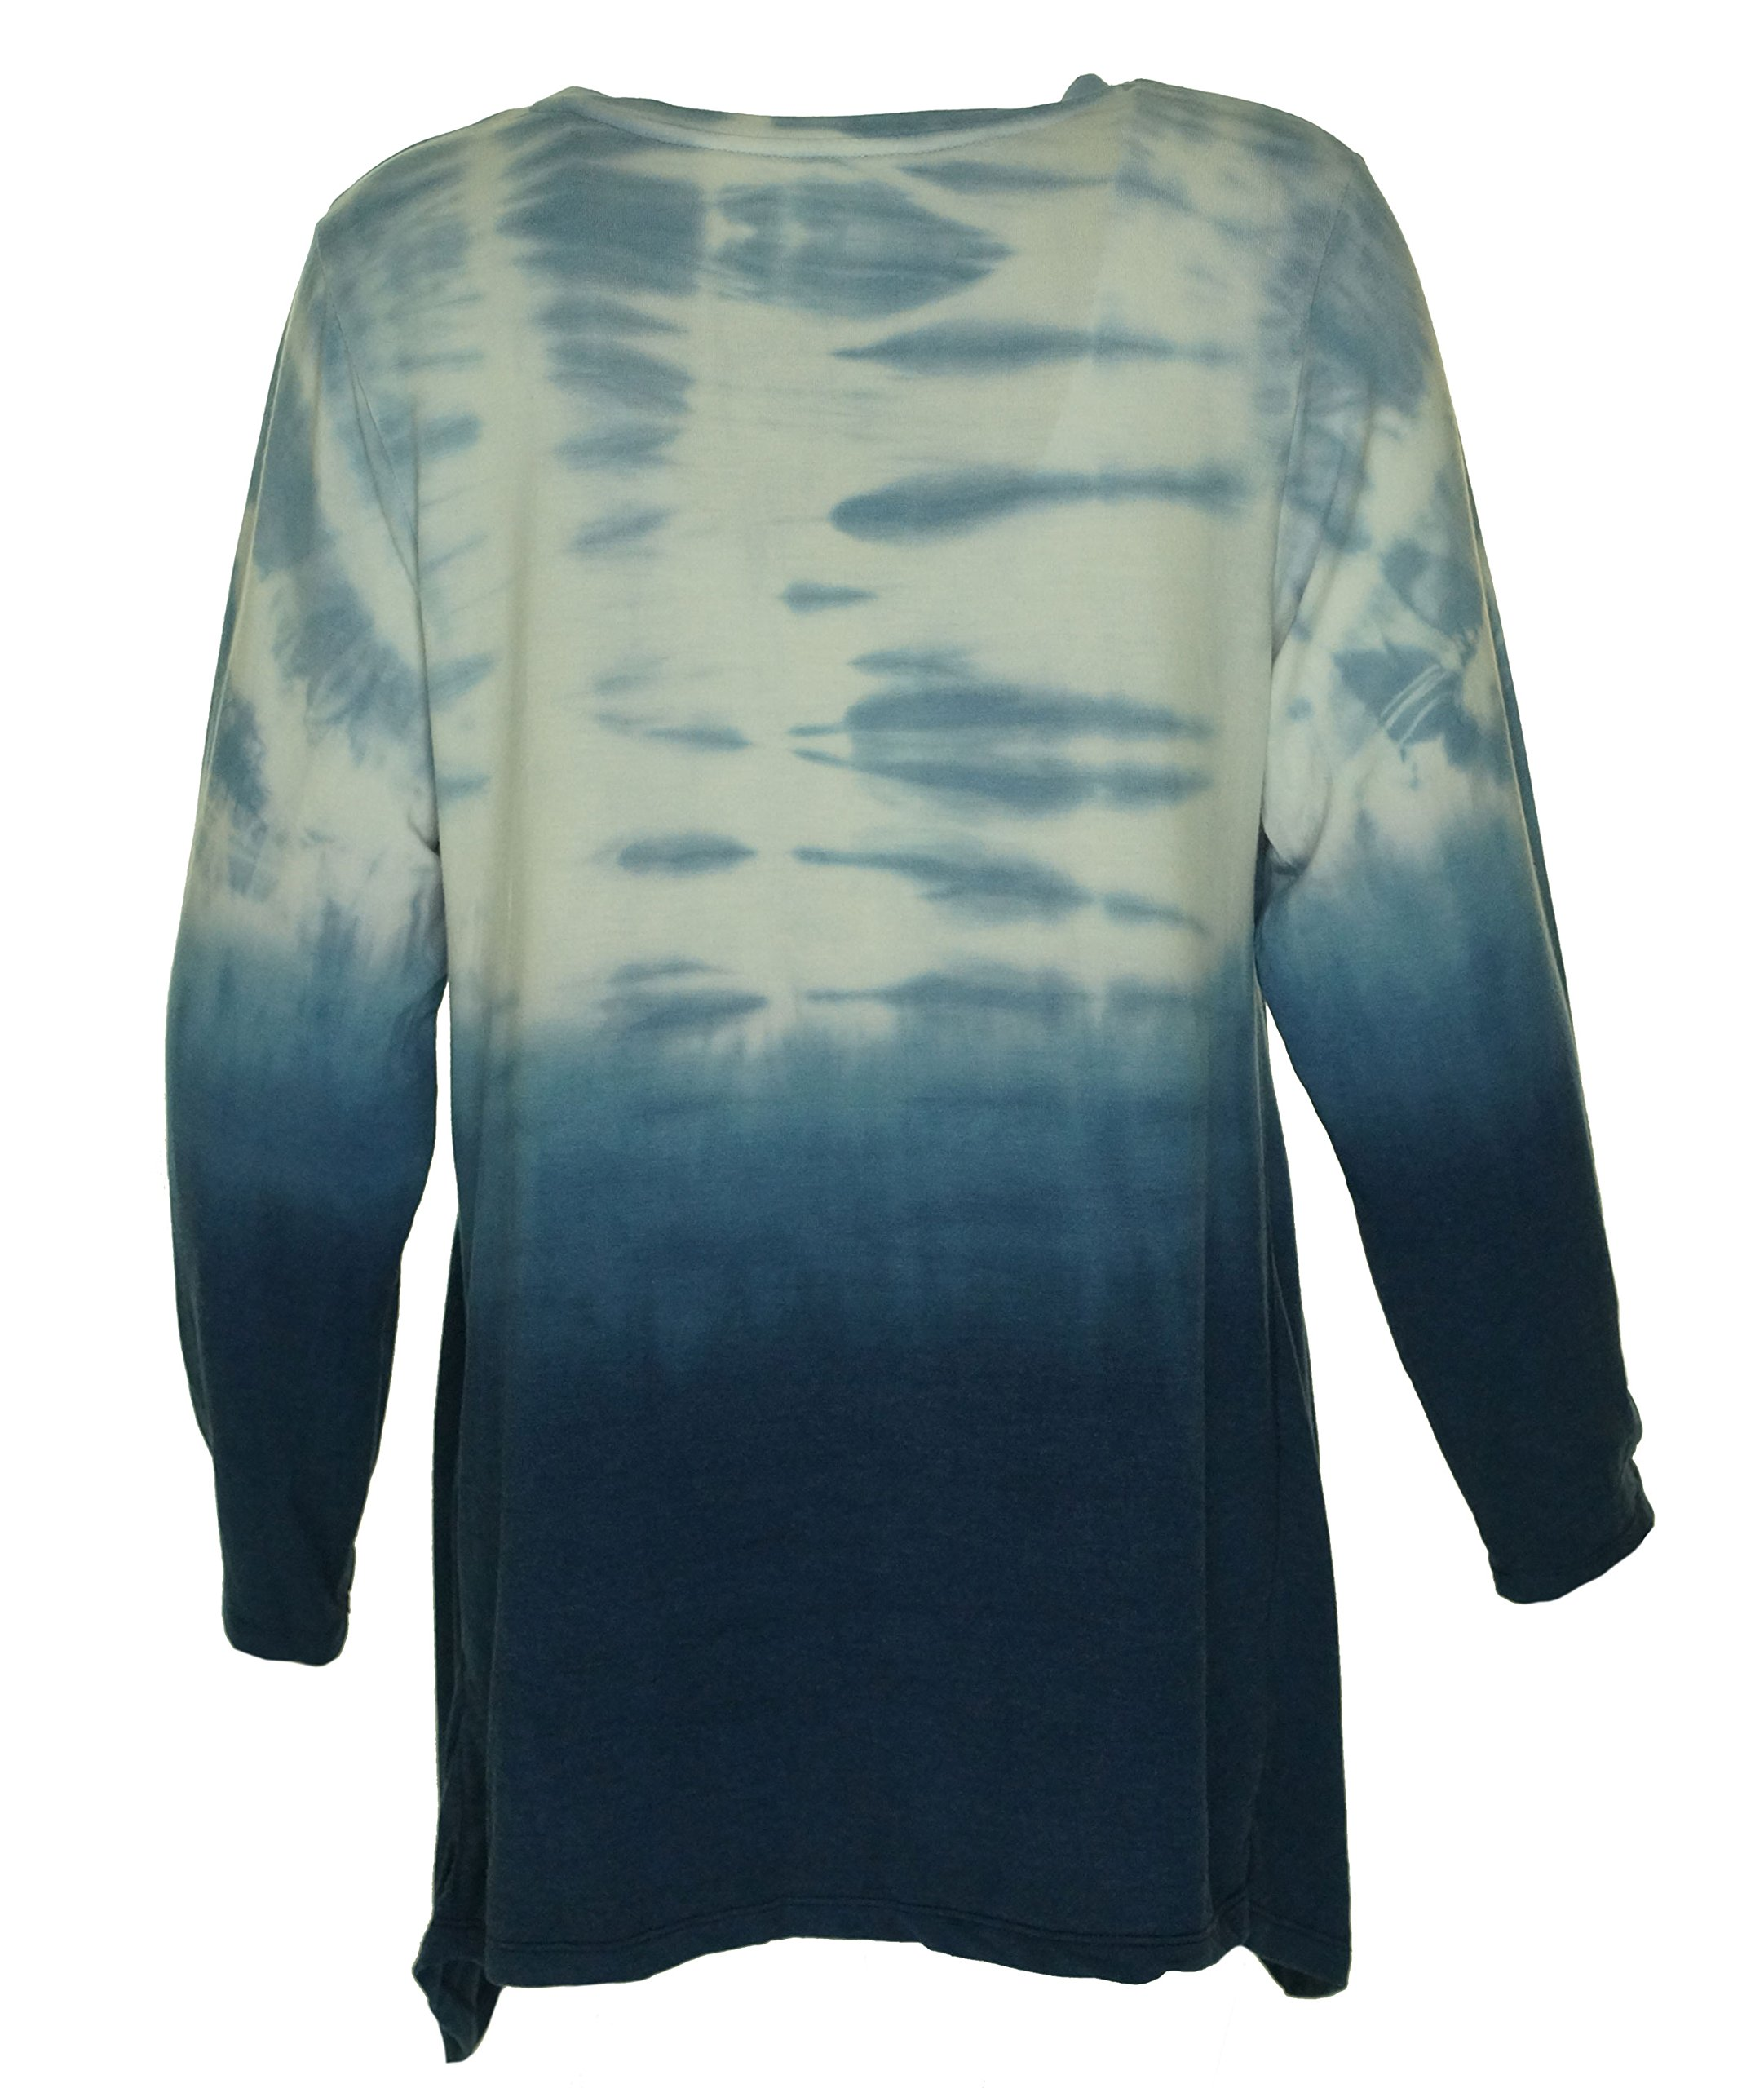 Style & Co. Womens Plus Ombre Tie Dye Casual Top Blue 2X